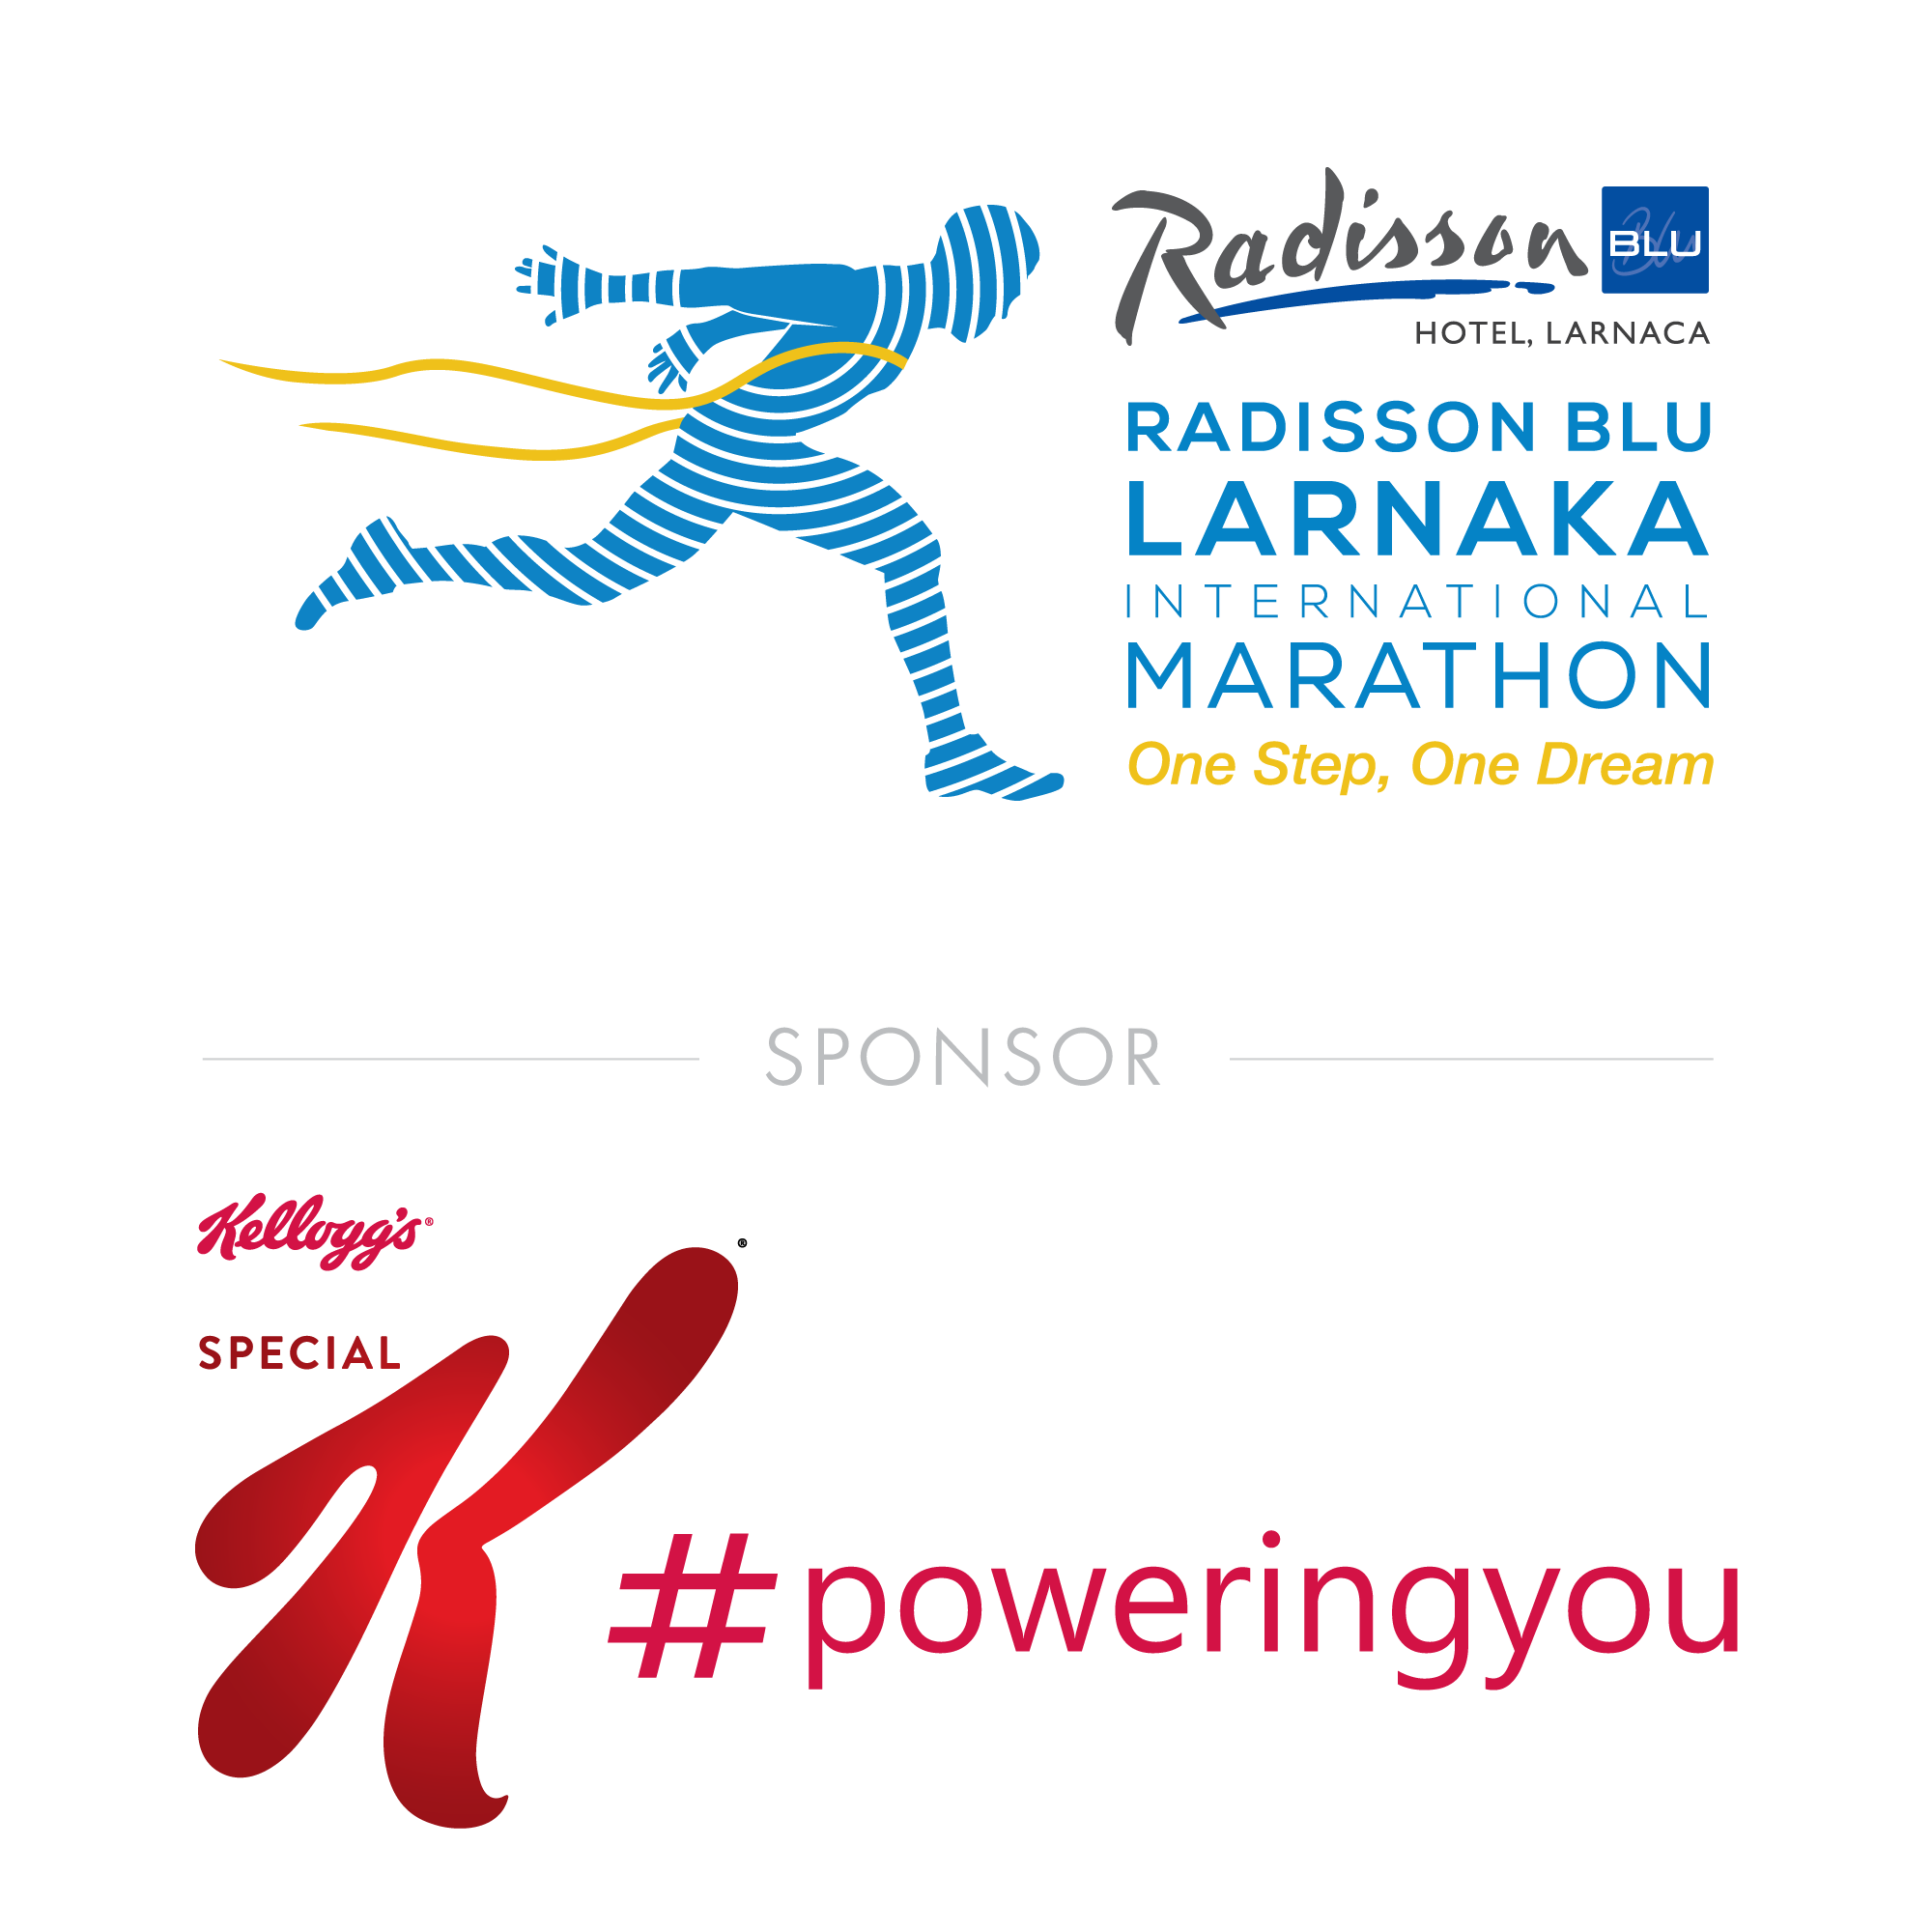 Tα Special K στηρίζουν τον Radisson Blu Larnaka International Marathon